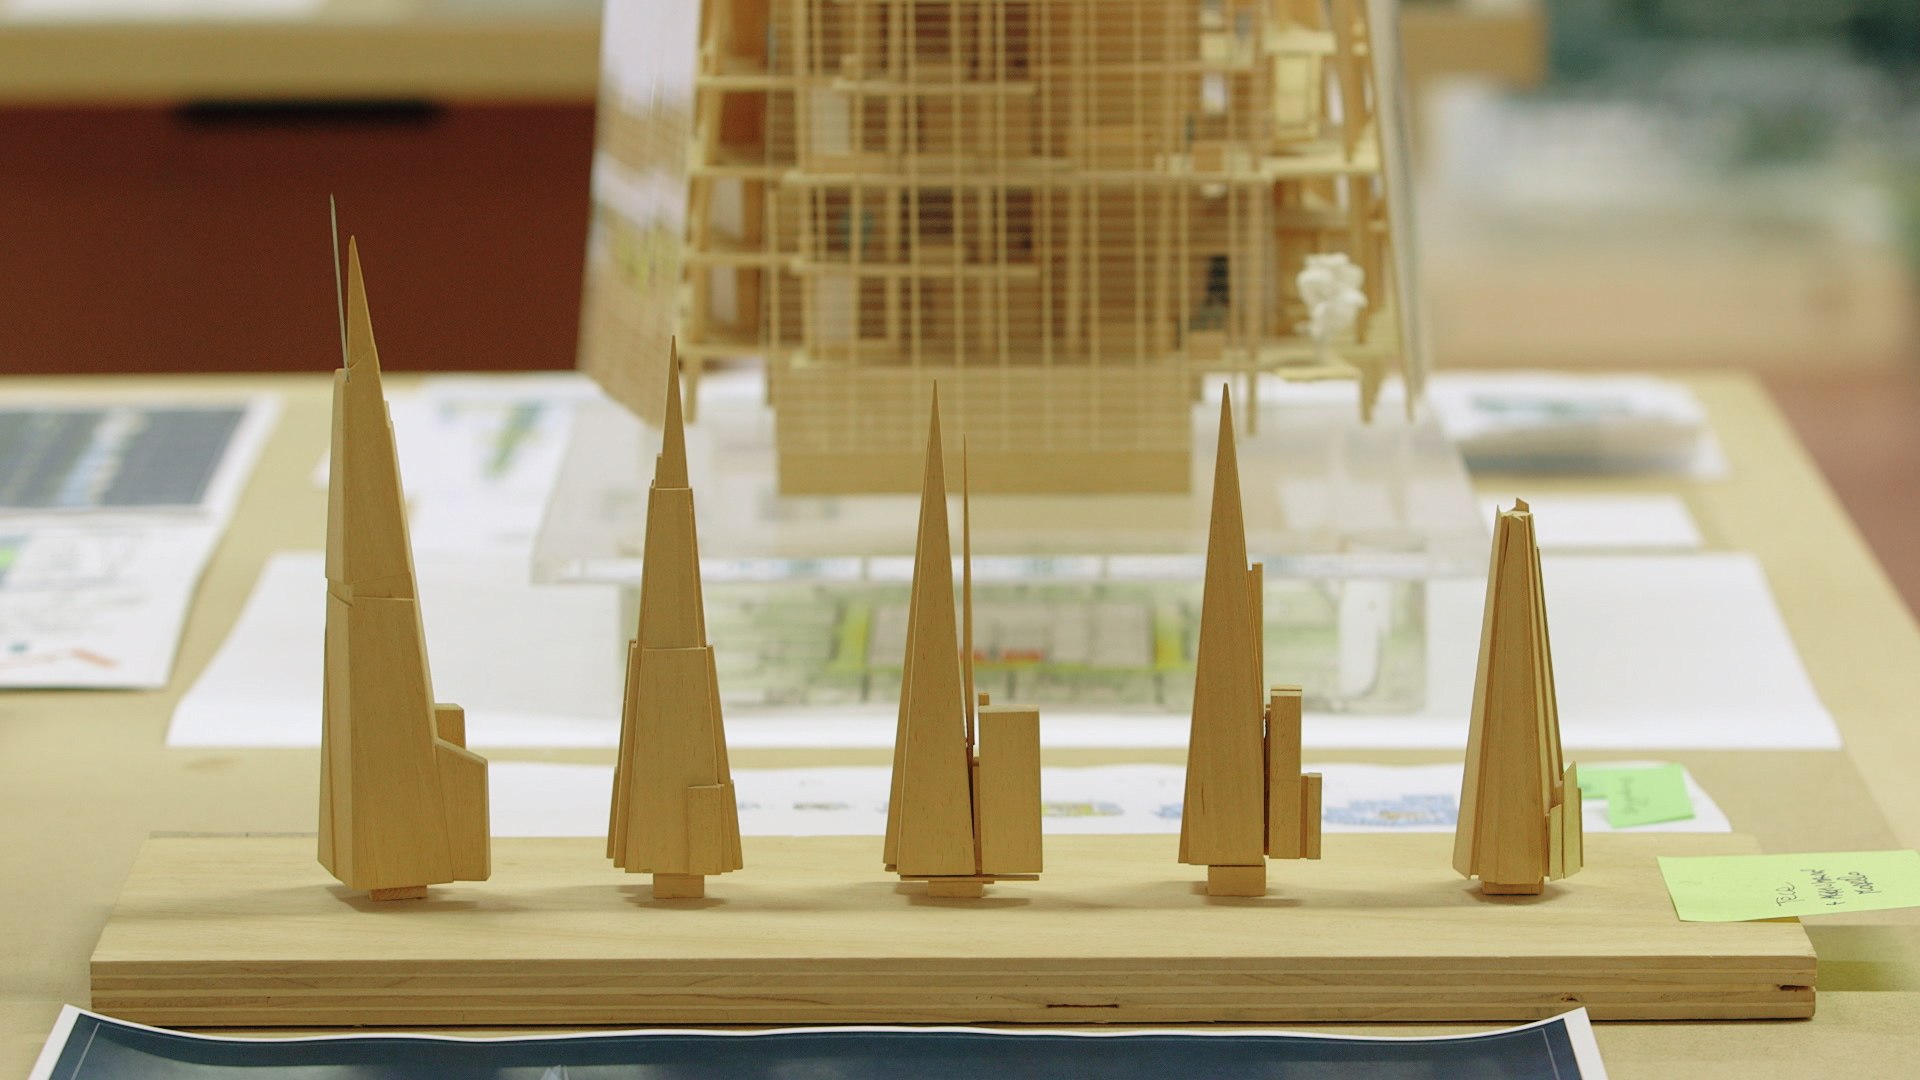 rpbw renzo piano building workds architecture shard london model